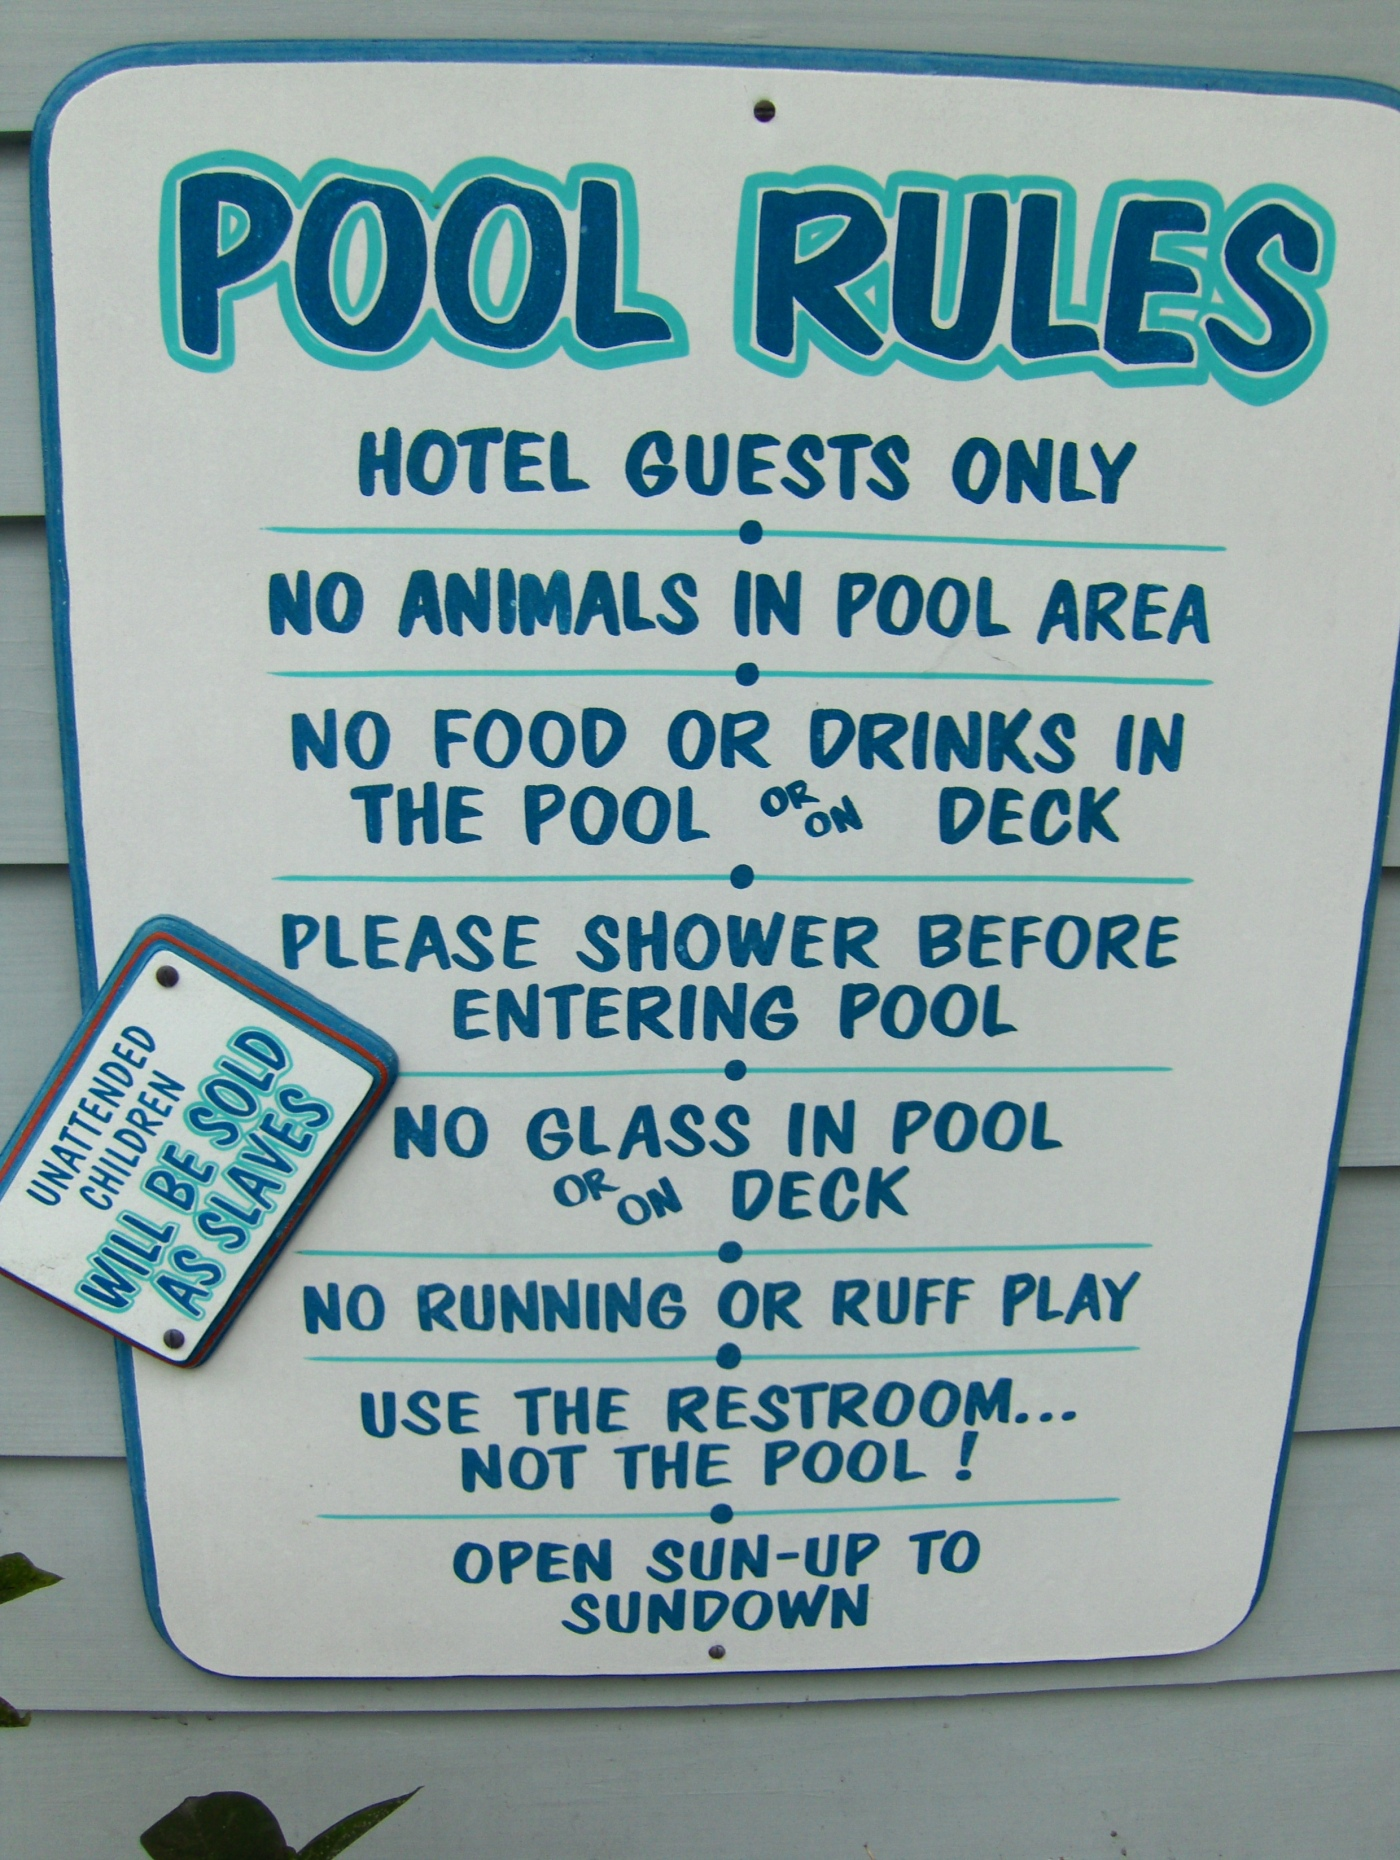 Image of a sign listing pool rules